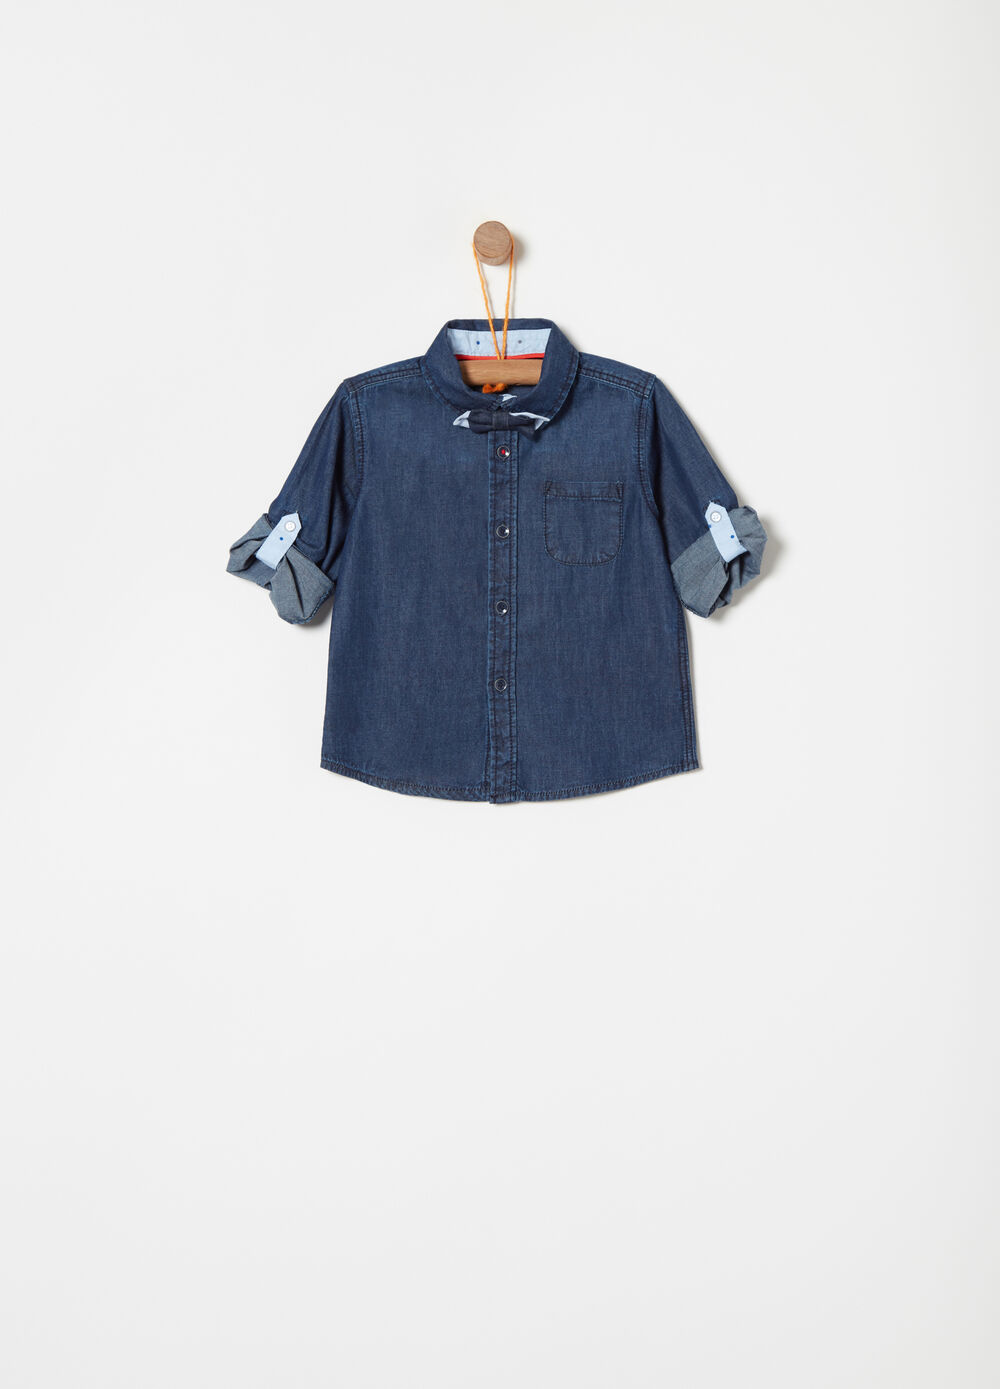 Denim shirt with bow and pocket